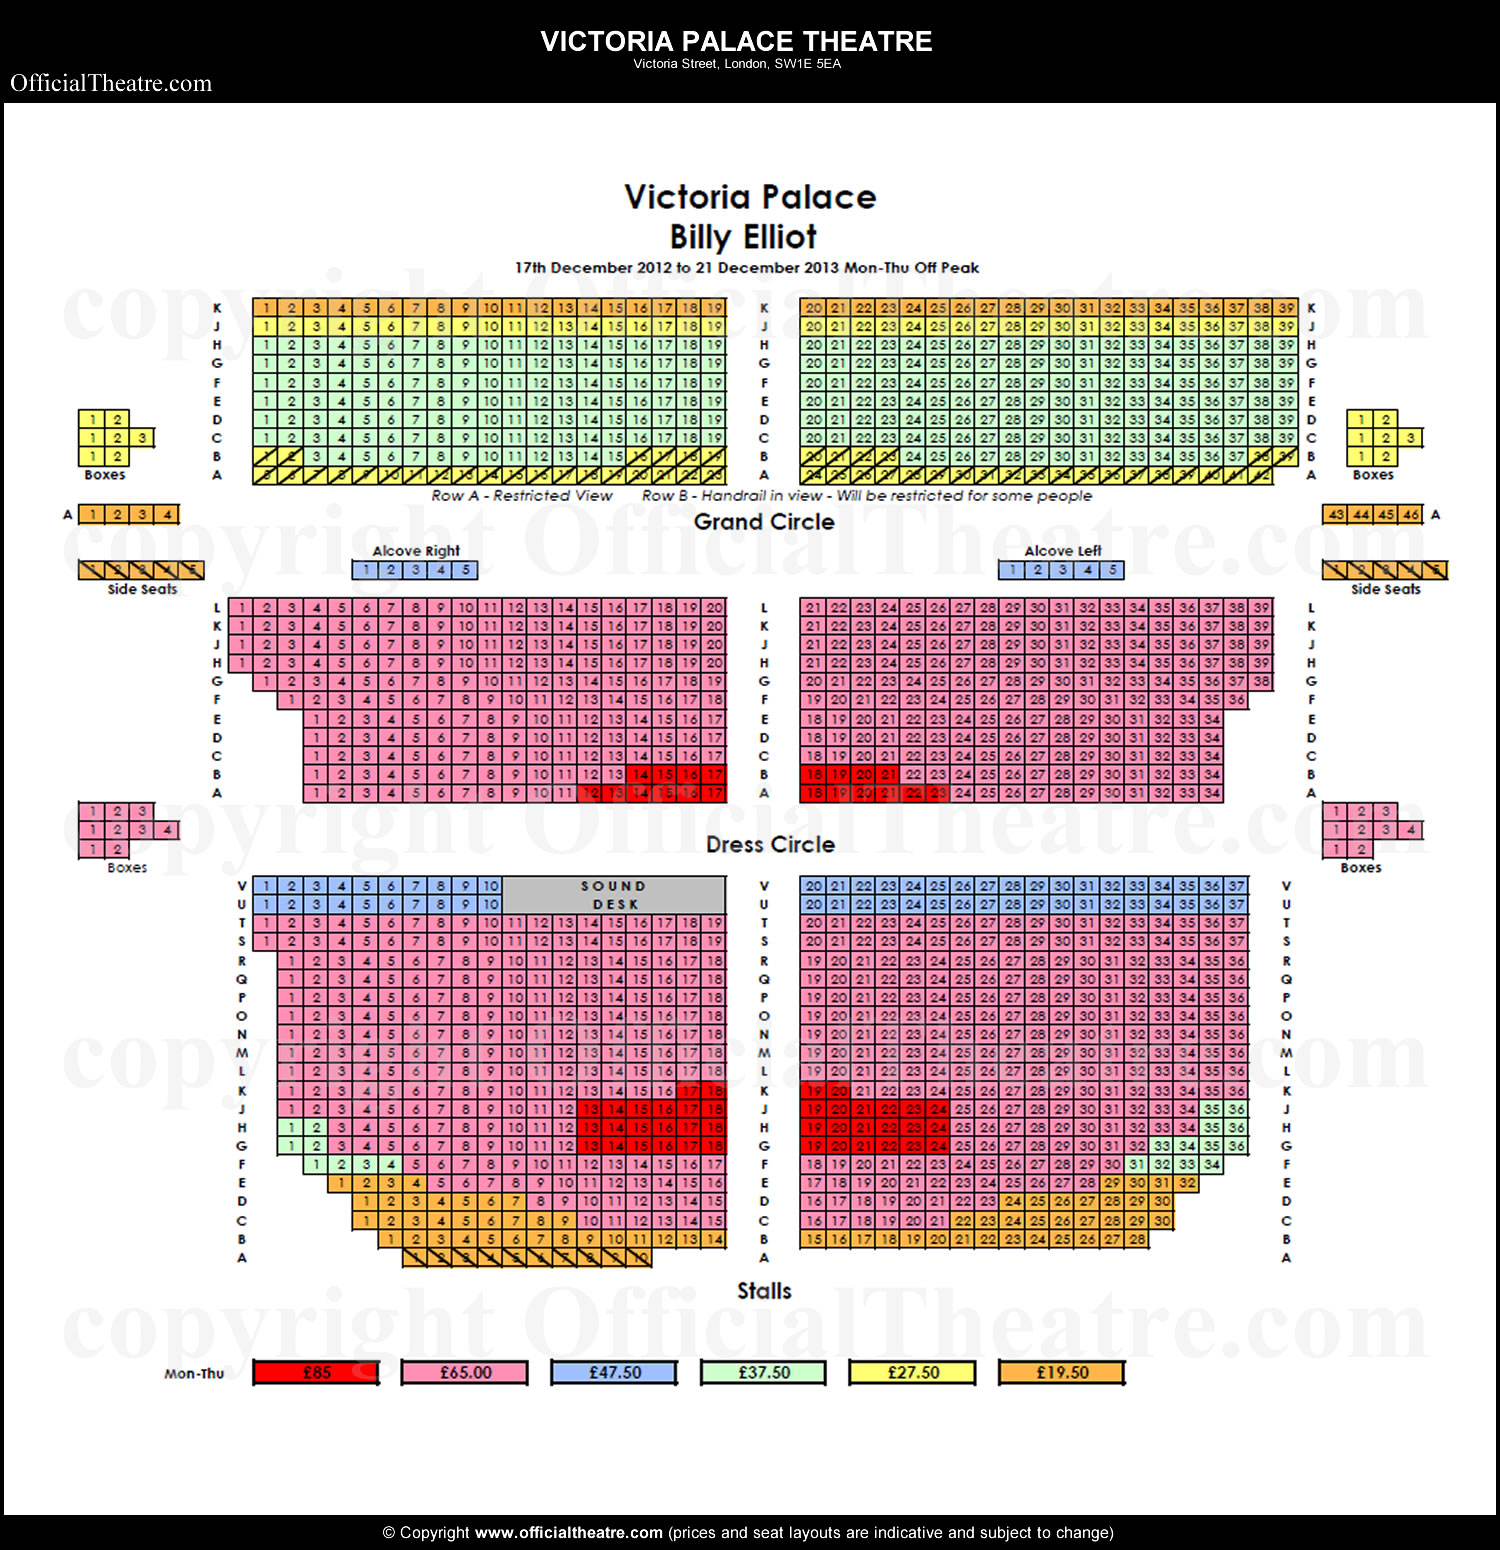 Victoria Palace Theatre seat prices